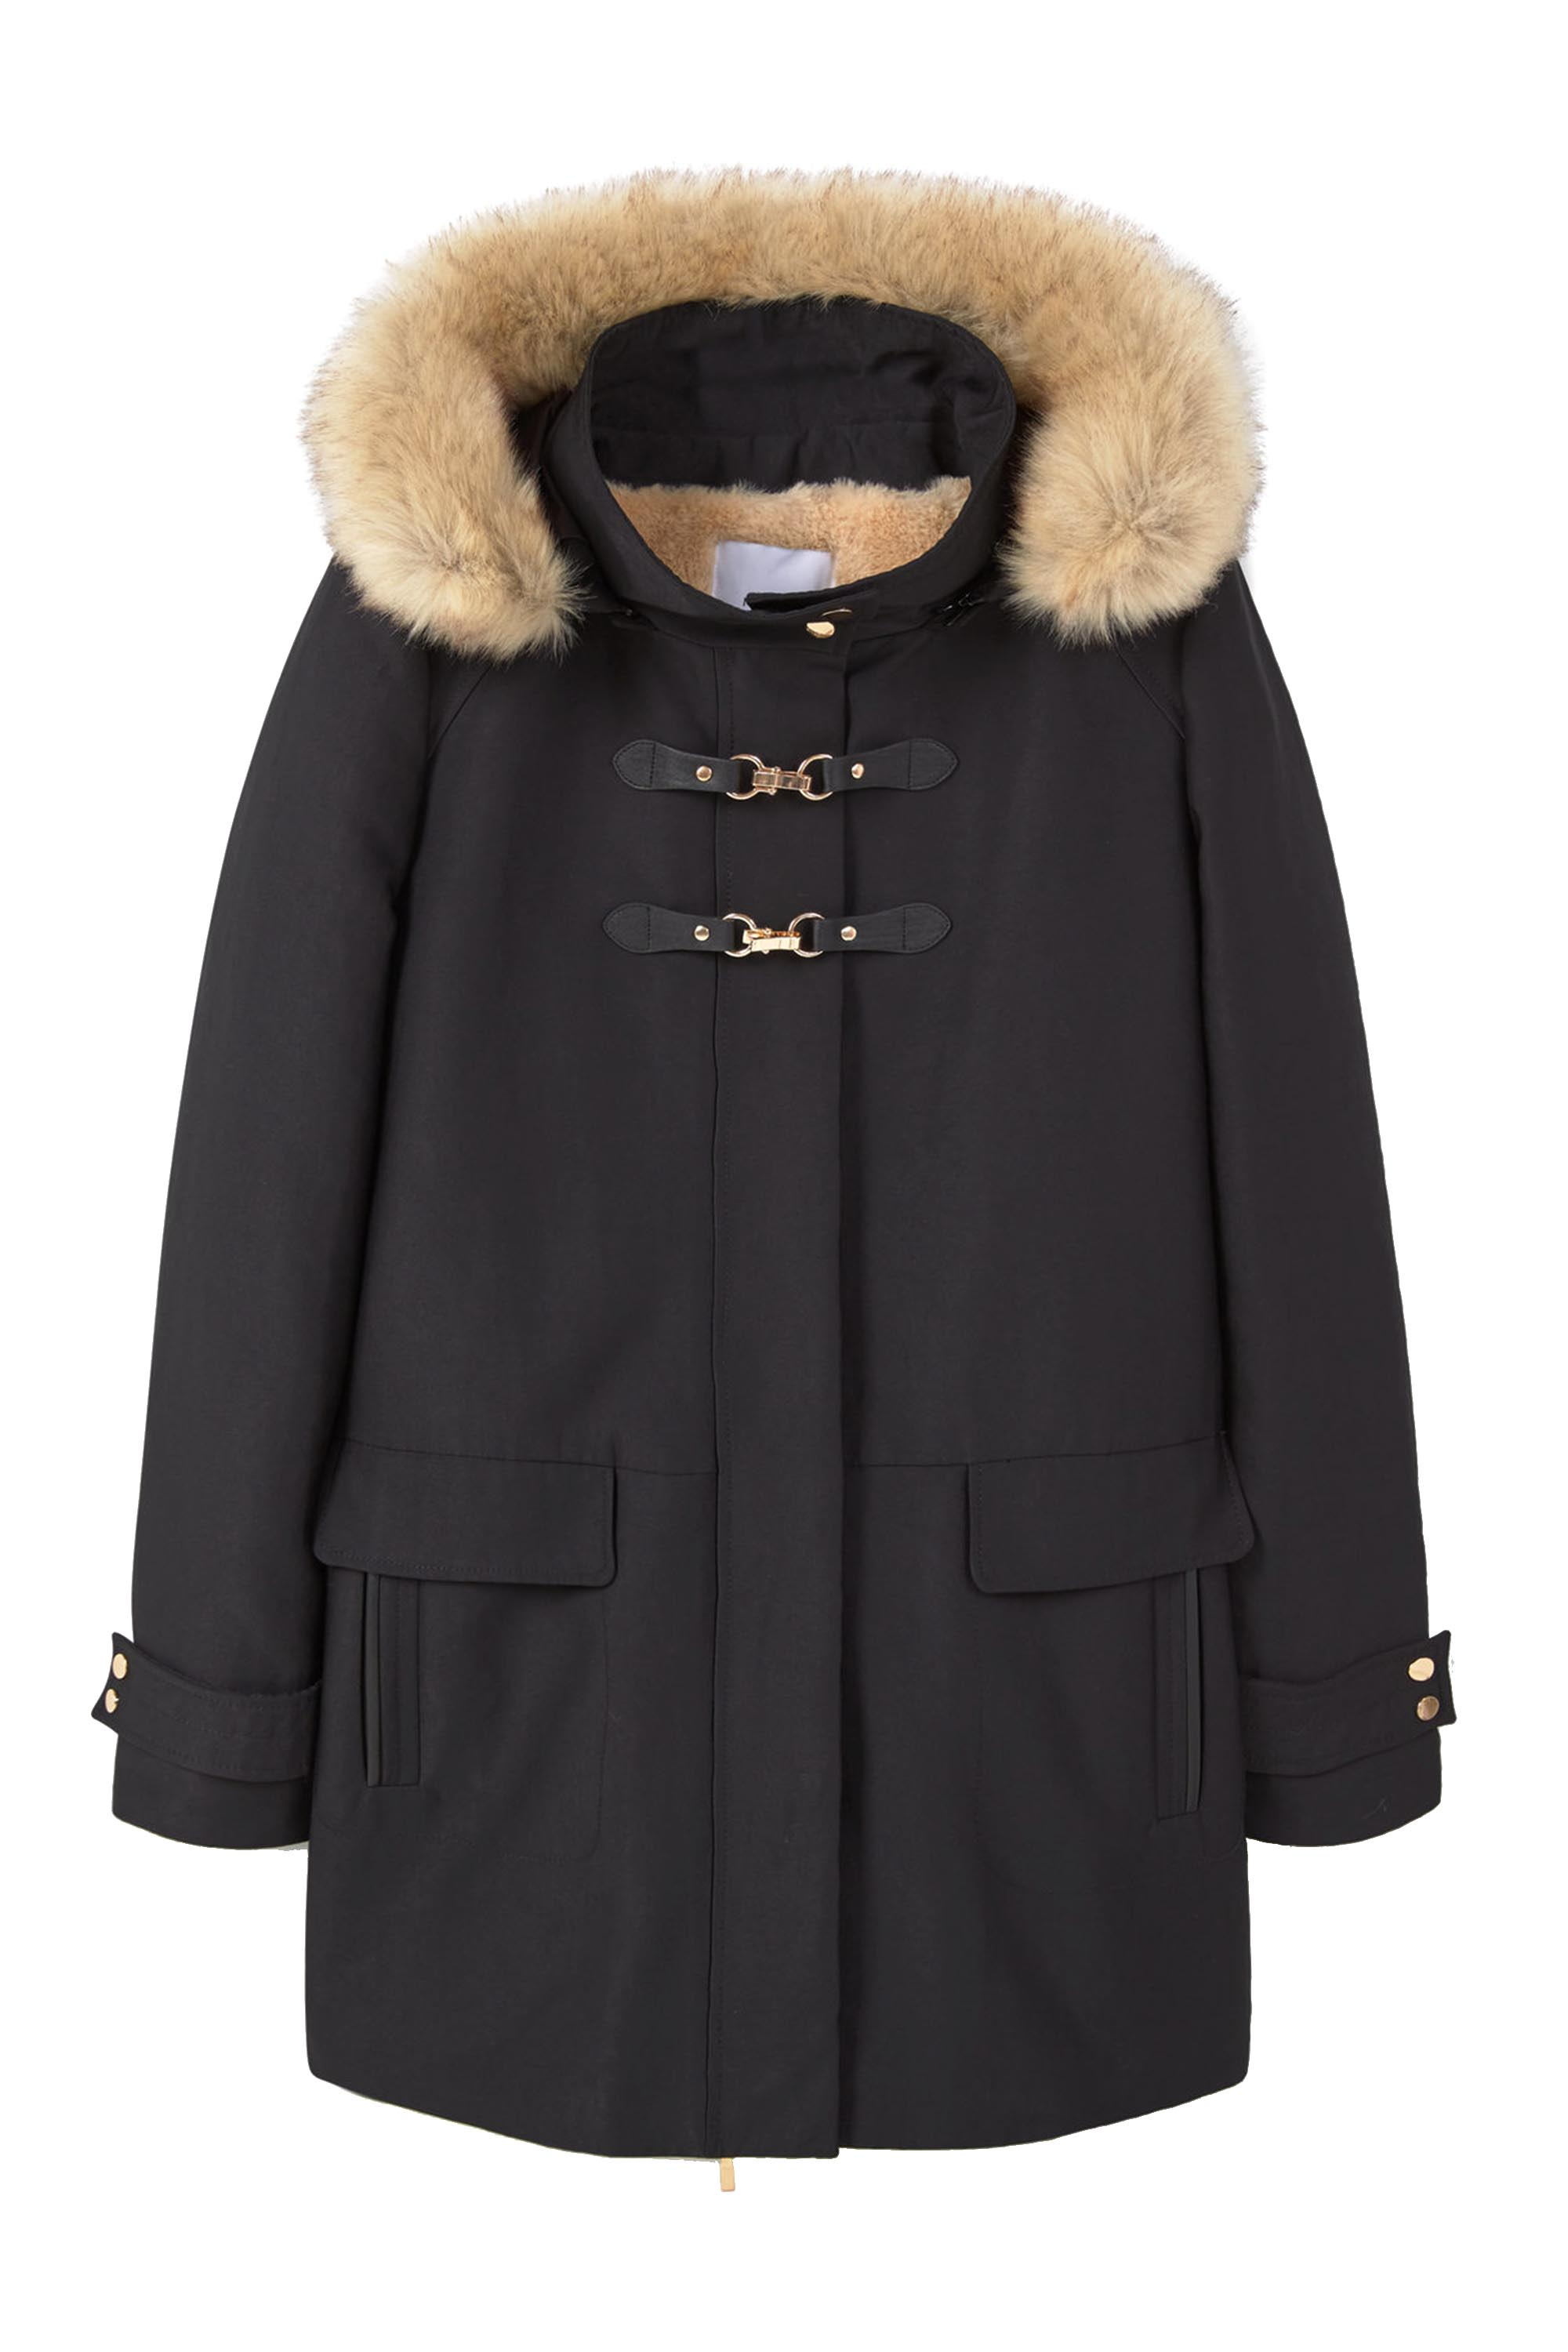 parka coats best parkas to shop for winter 2016 - best winter coats FUNFXKZ